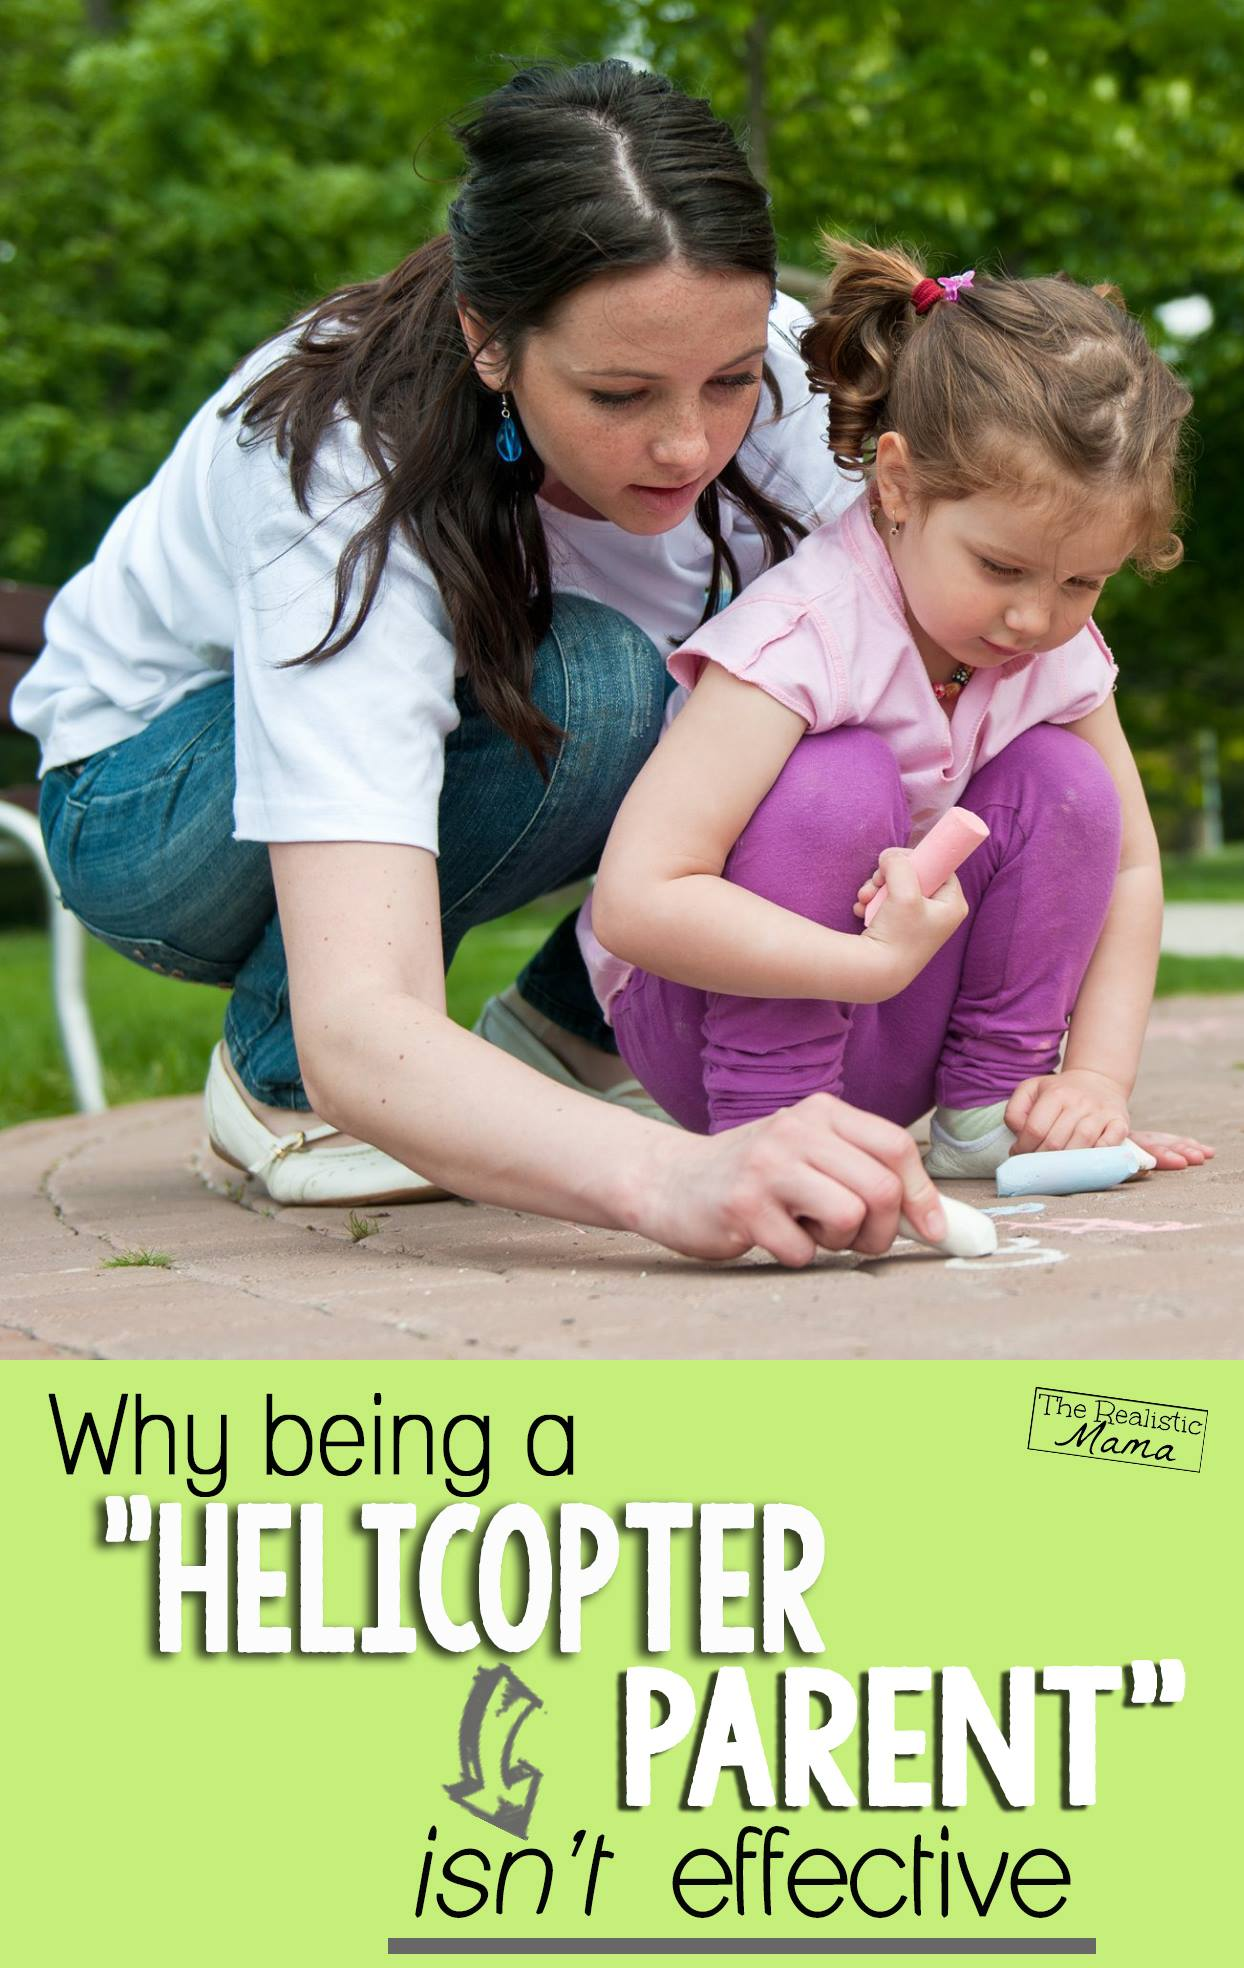 Why helicopter parenting isn't effective and what to do instead